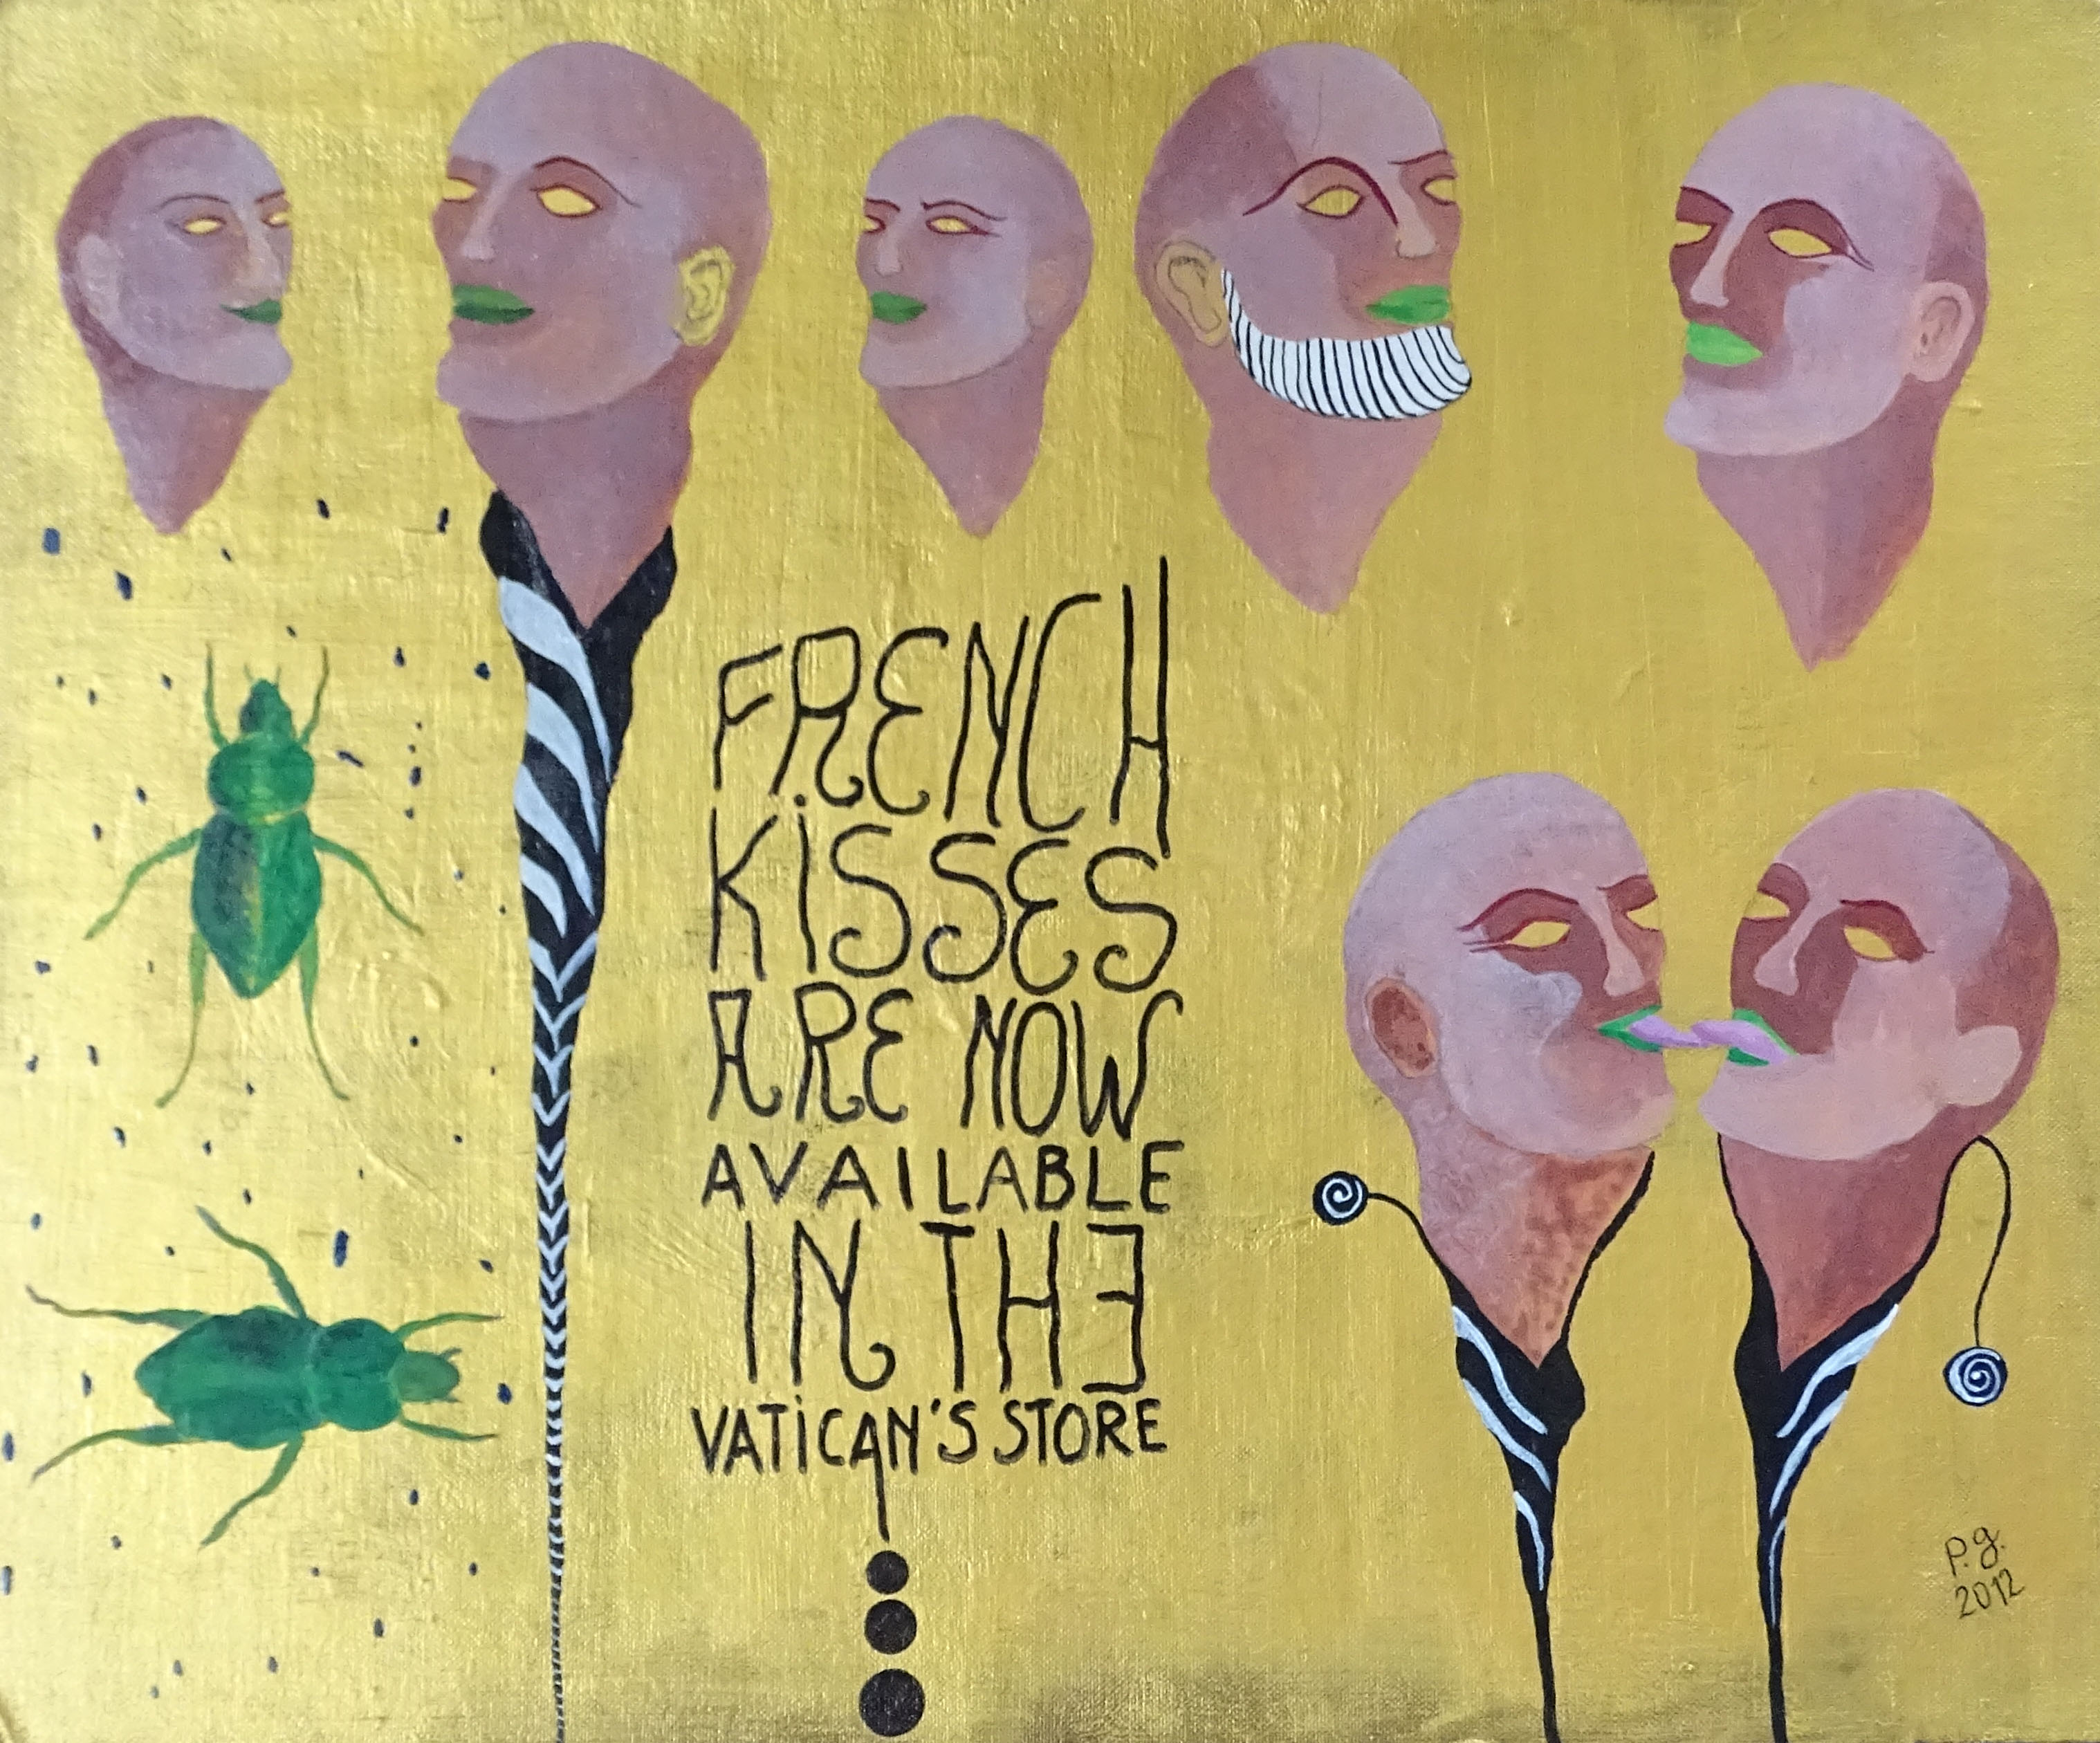 French Kisses - 2012 - p.g. [patrick gourgouillat]